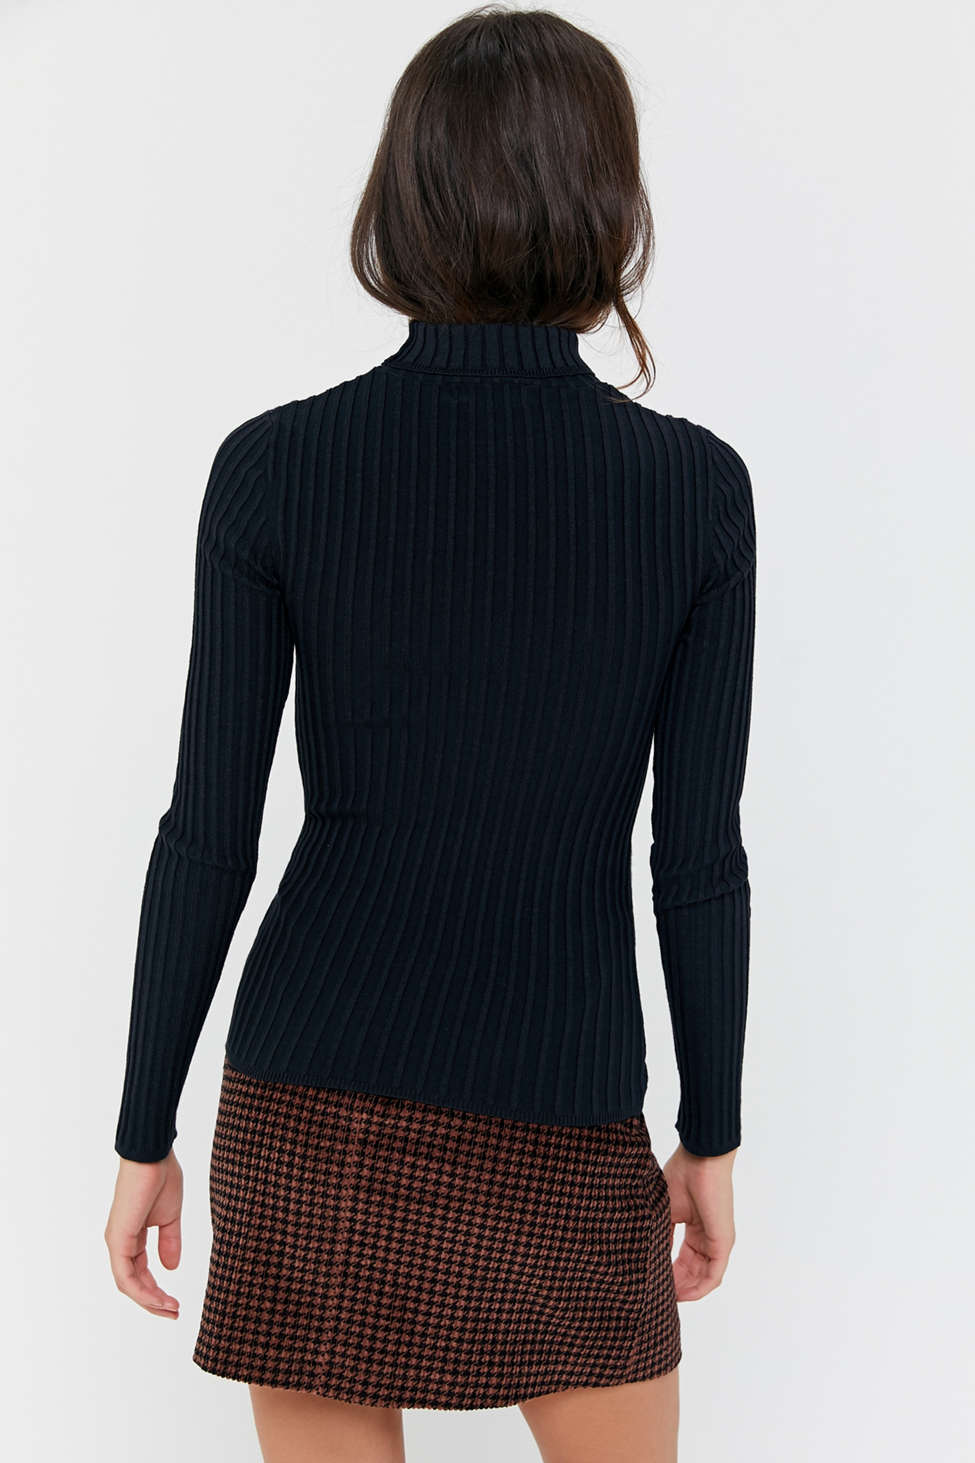 Uo Ronnie Ribbed Knit Turtleneck Sweater by Urban Outfitters